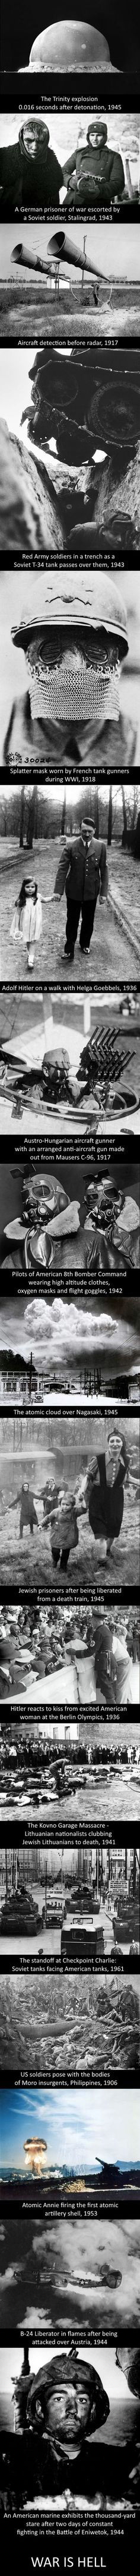 History Discover Old snaps you have to see. Part 8 - WAR IS HELL edition hehe.Scroll down to enjoy this list of some of the funniest history memes. History Memes, History Photos, History Facts, World History, Funny History, Nasa History, Rare Photos, Old Photos, Weird Facts